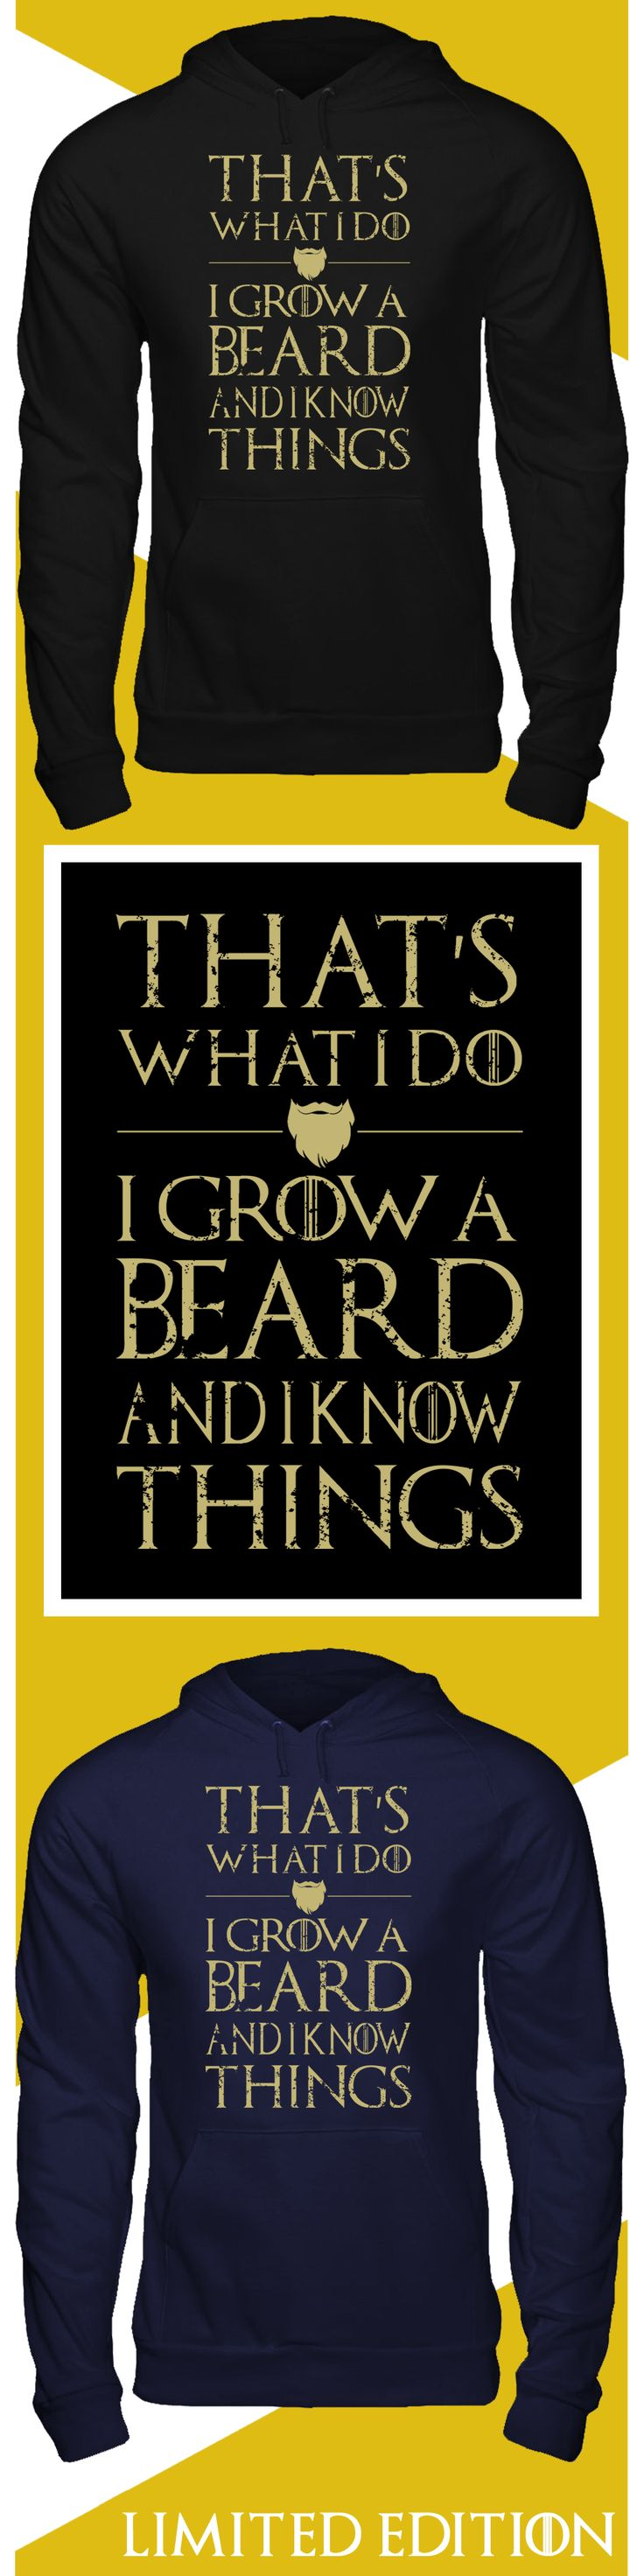 Grow Beard and Know Things - Limited edition. Order 2 or more for friends/family & save on shipping! Makes a great gift!